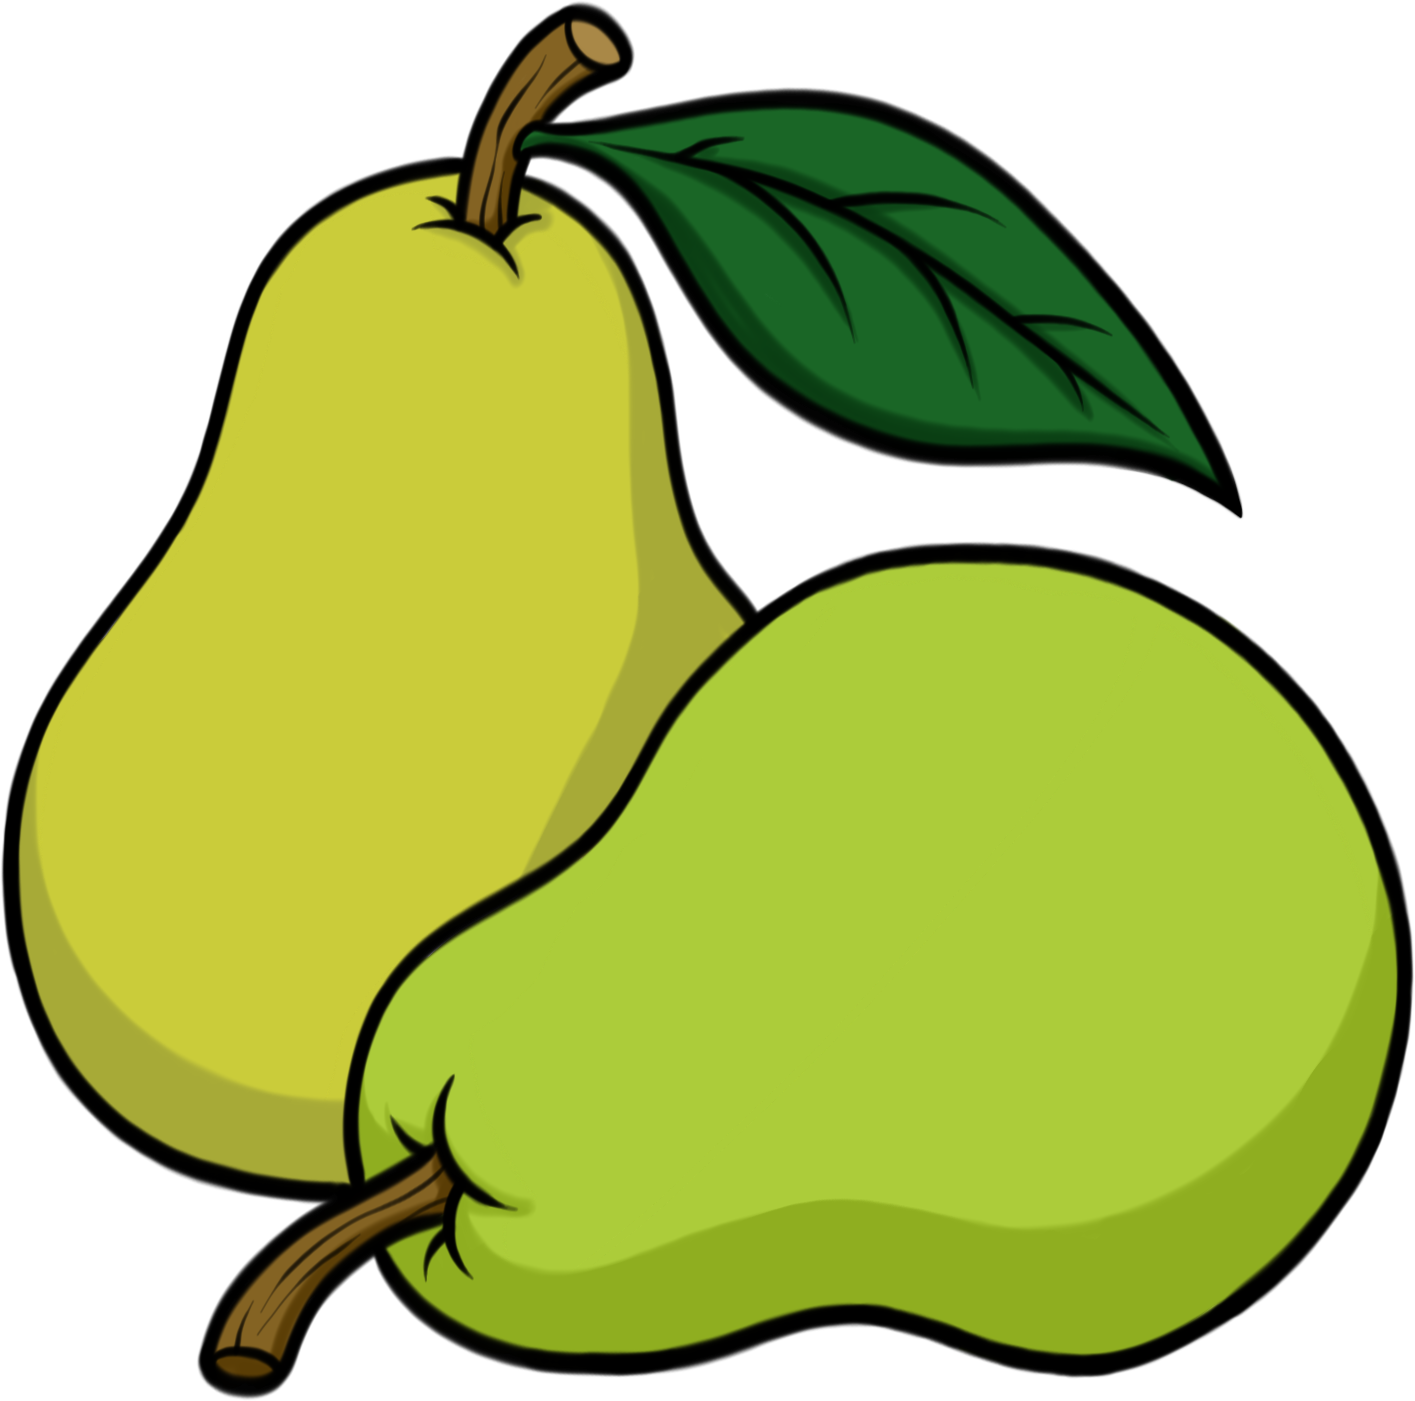 Image result for drawing. Pear clipart pear shape